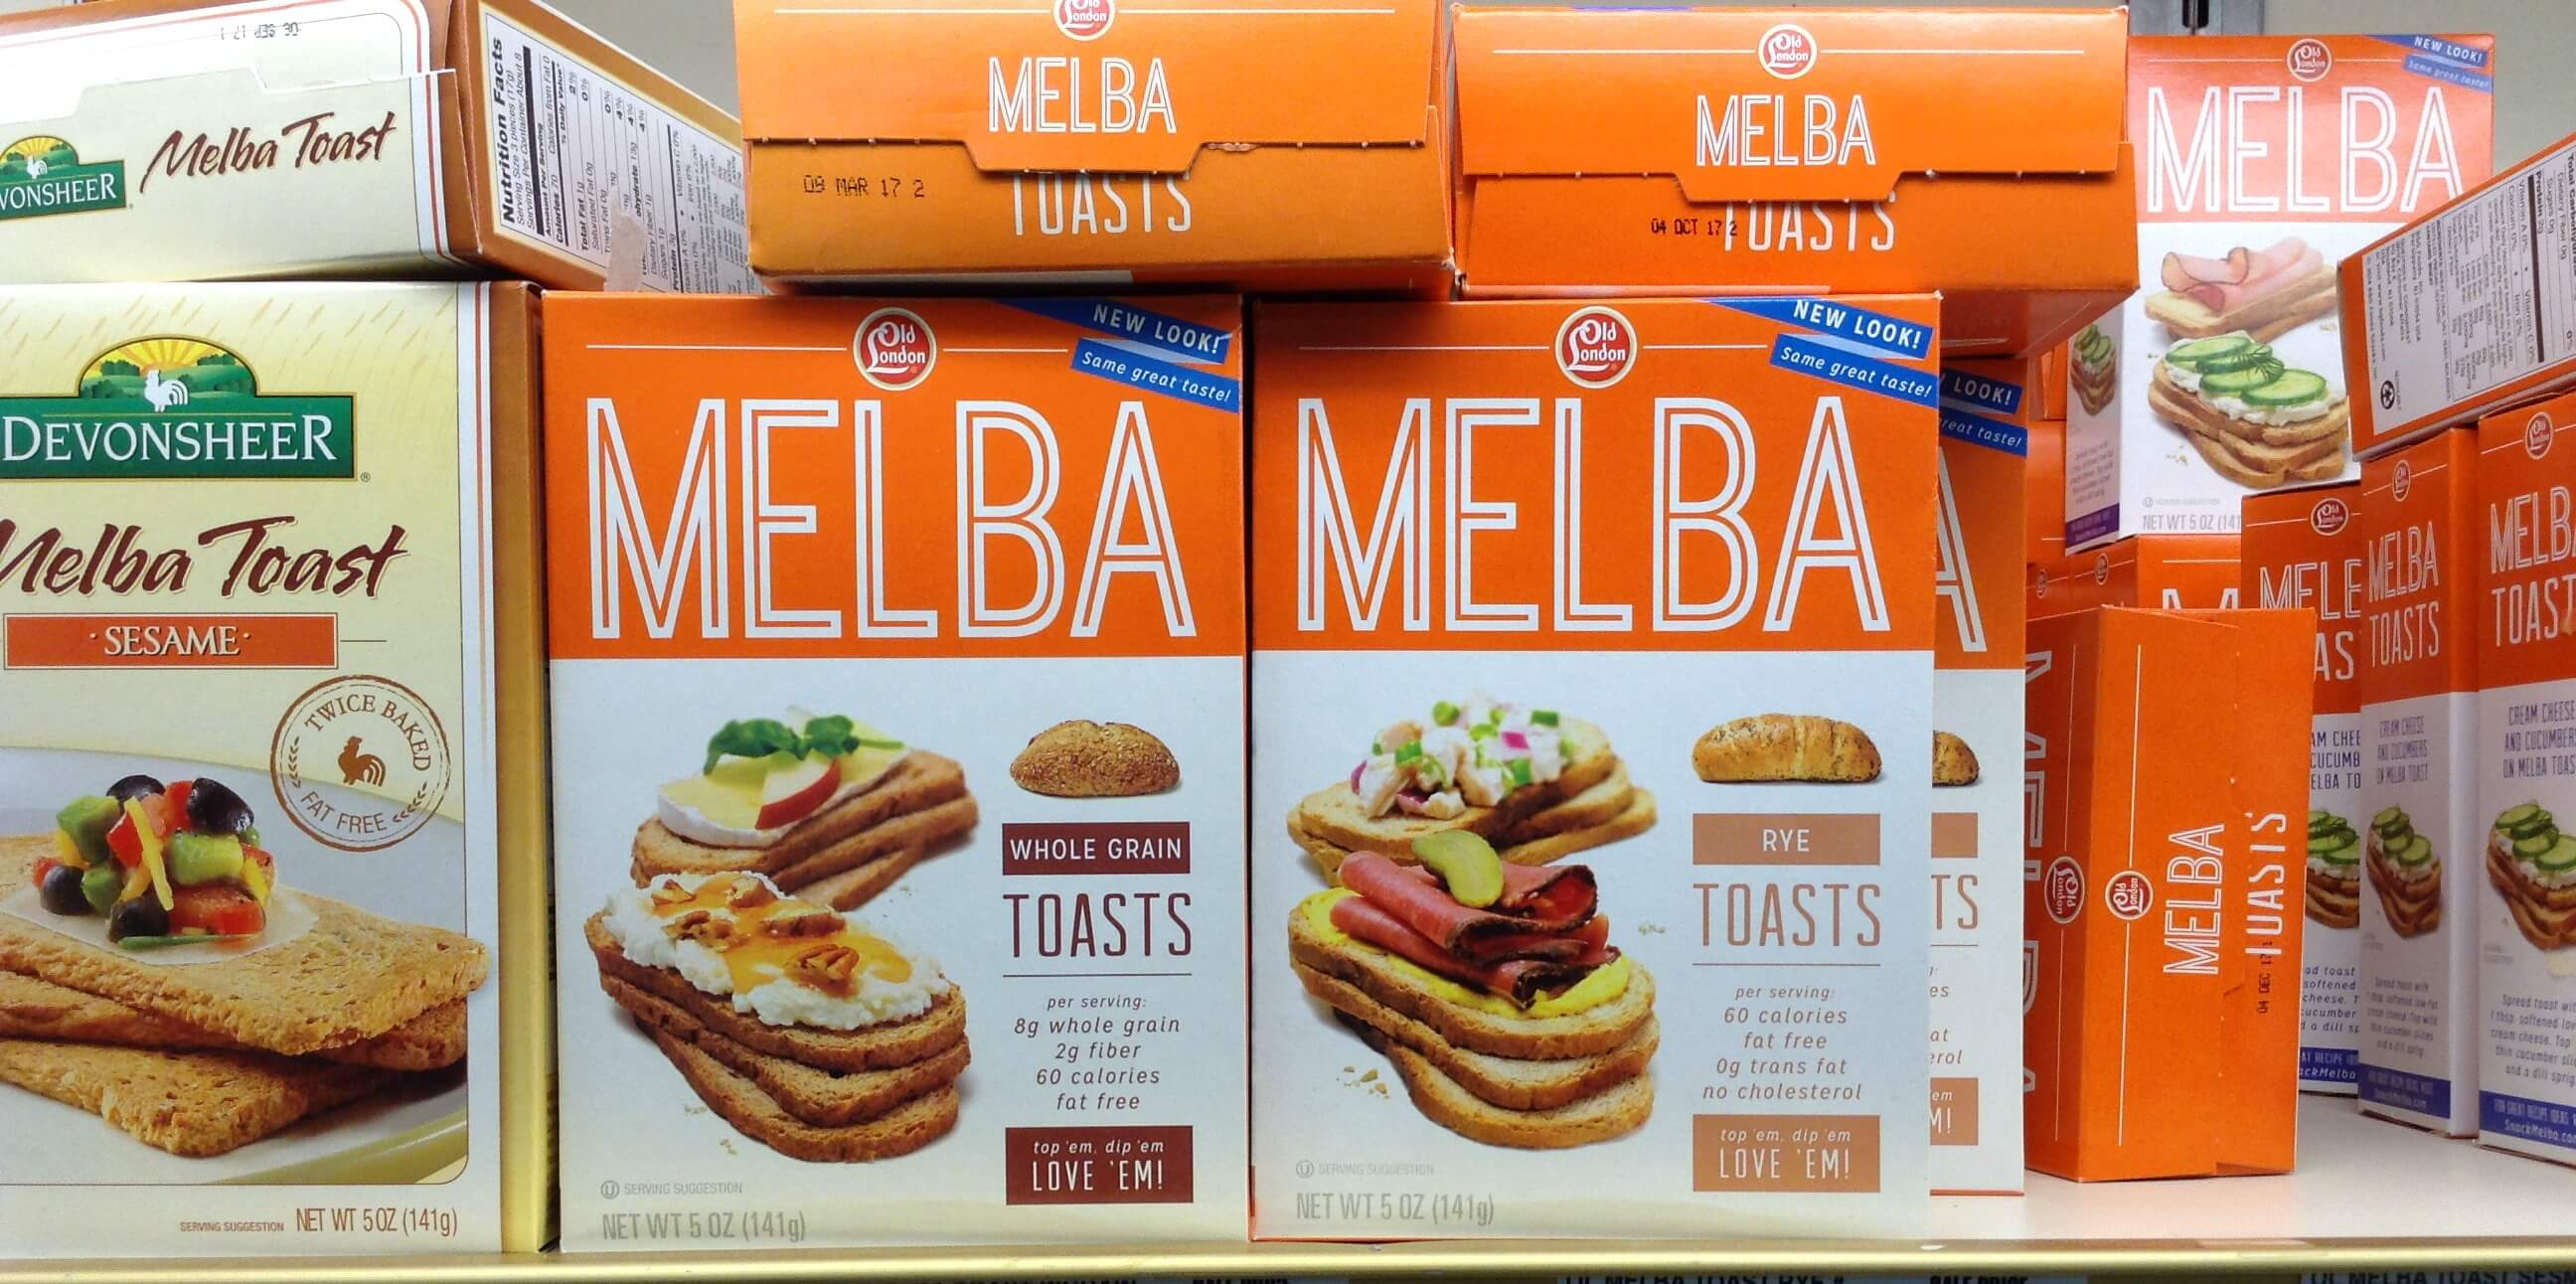 Old London Melba Toast As Low 2 FREE At ShopRite